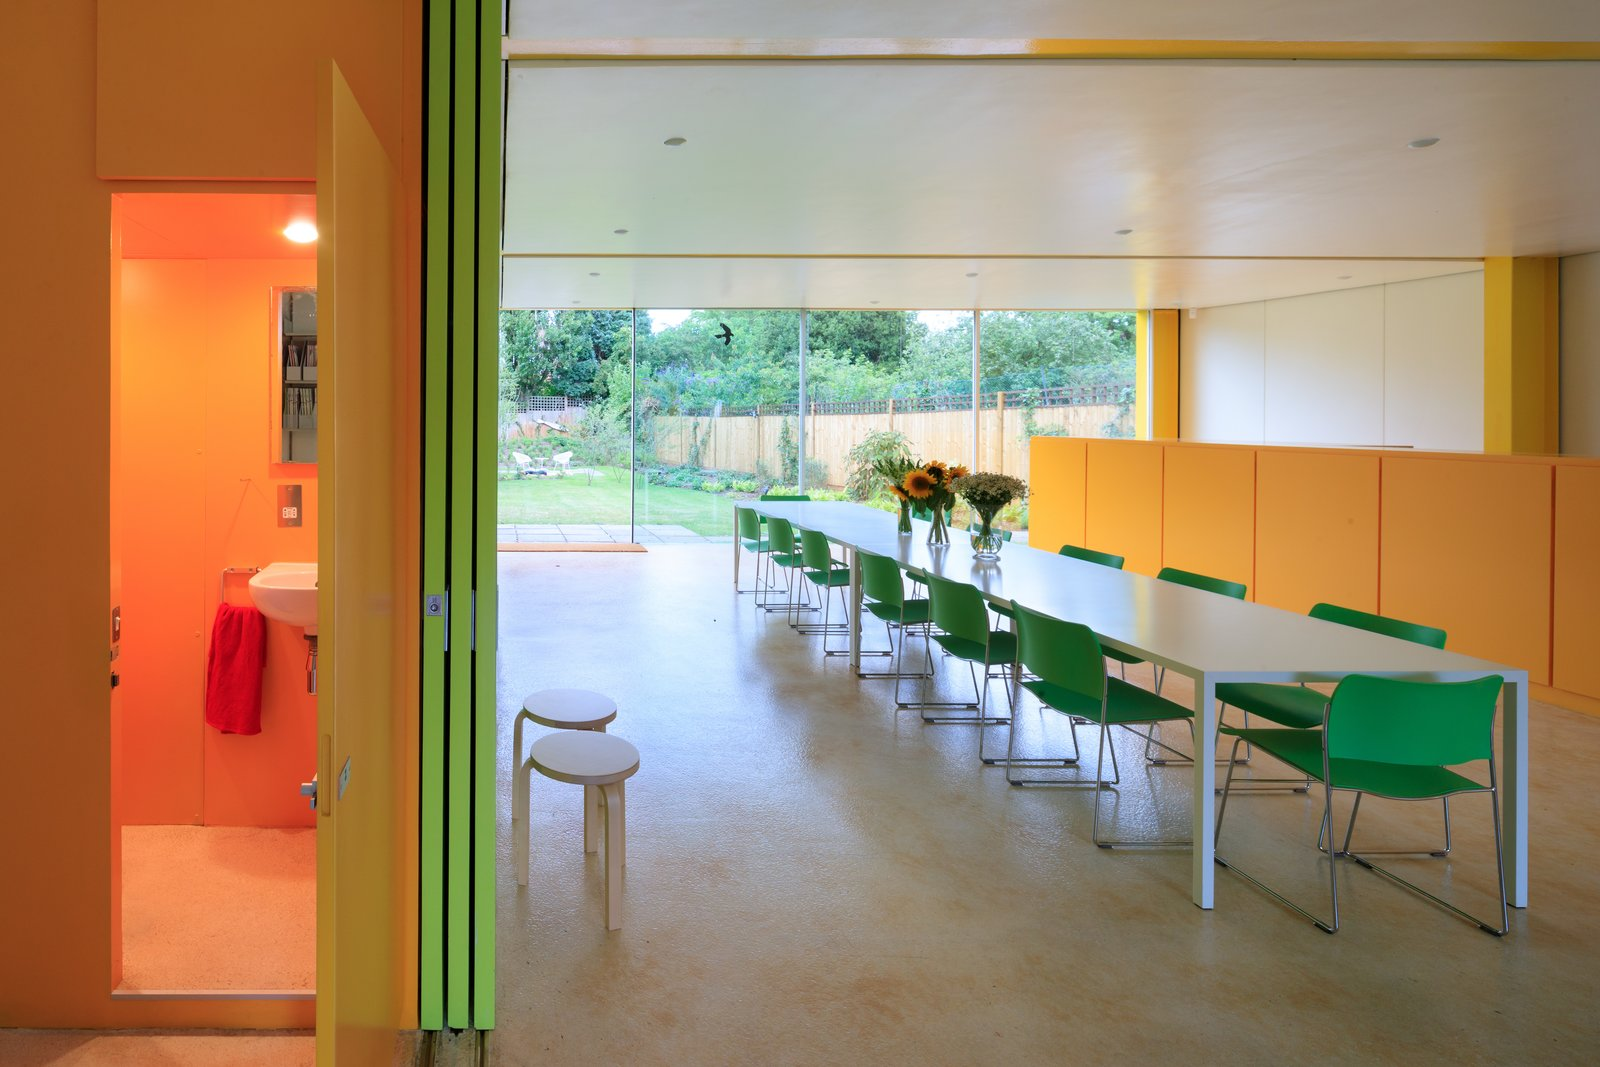 Photo 4 of 14 in Fully Renovated, Wimbledon House by Richard Rogers Hosts New Architecture Fellows in London